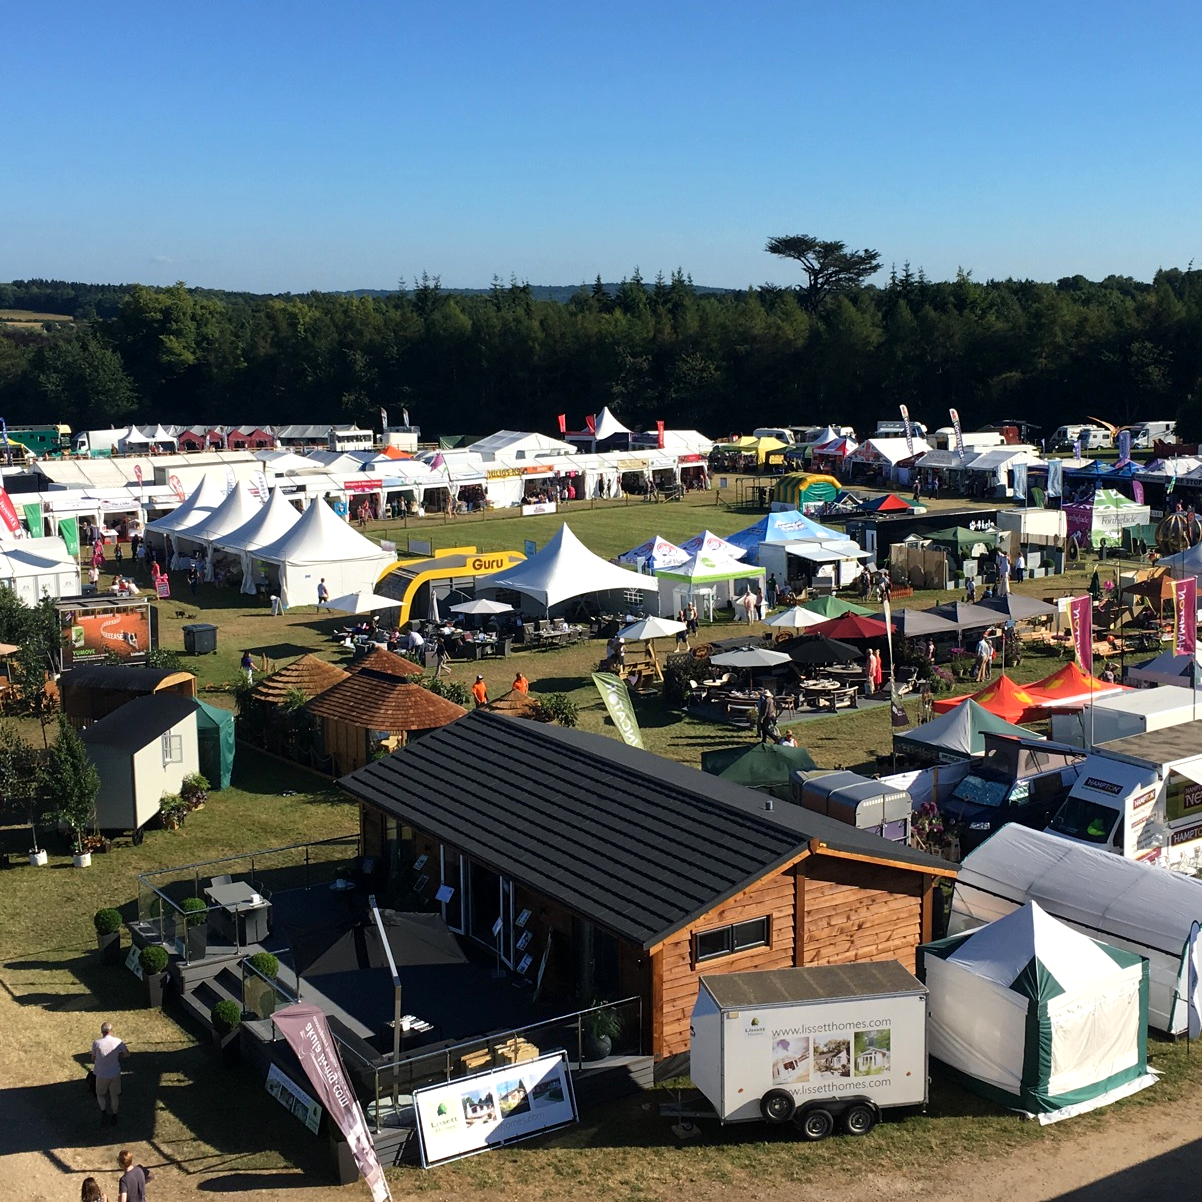 Just a very small section of the Countryfile Live showground!